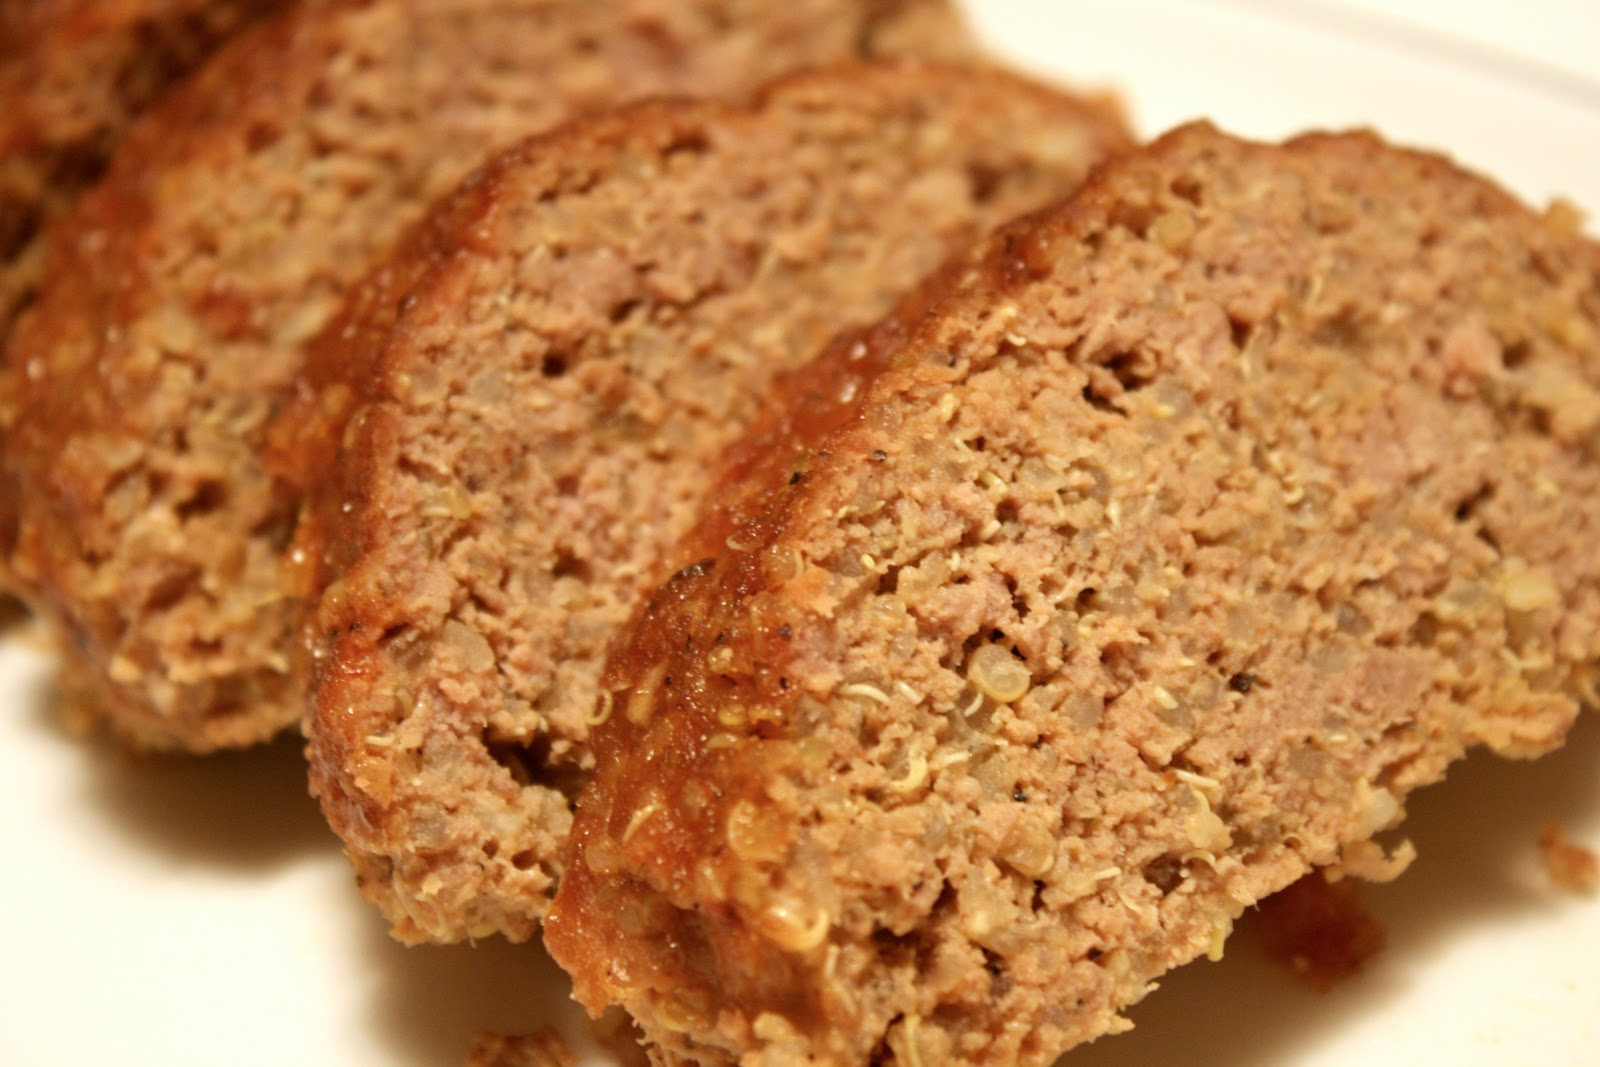 No Gluten, No Problem: Friday Foto: Turkey Quinoa Meatloaf